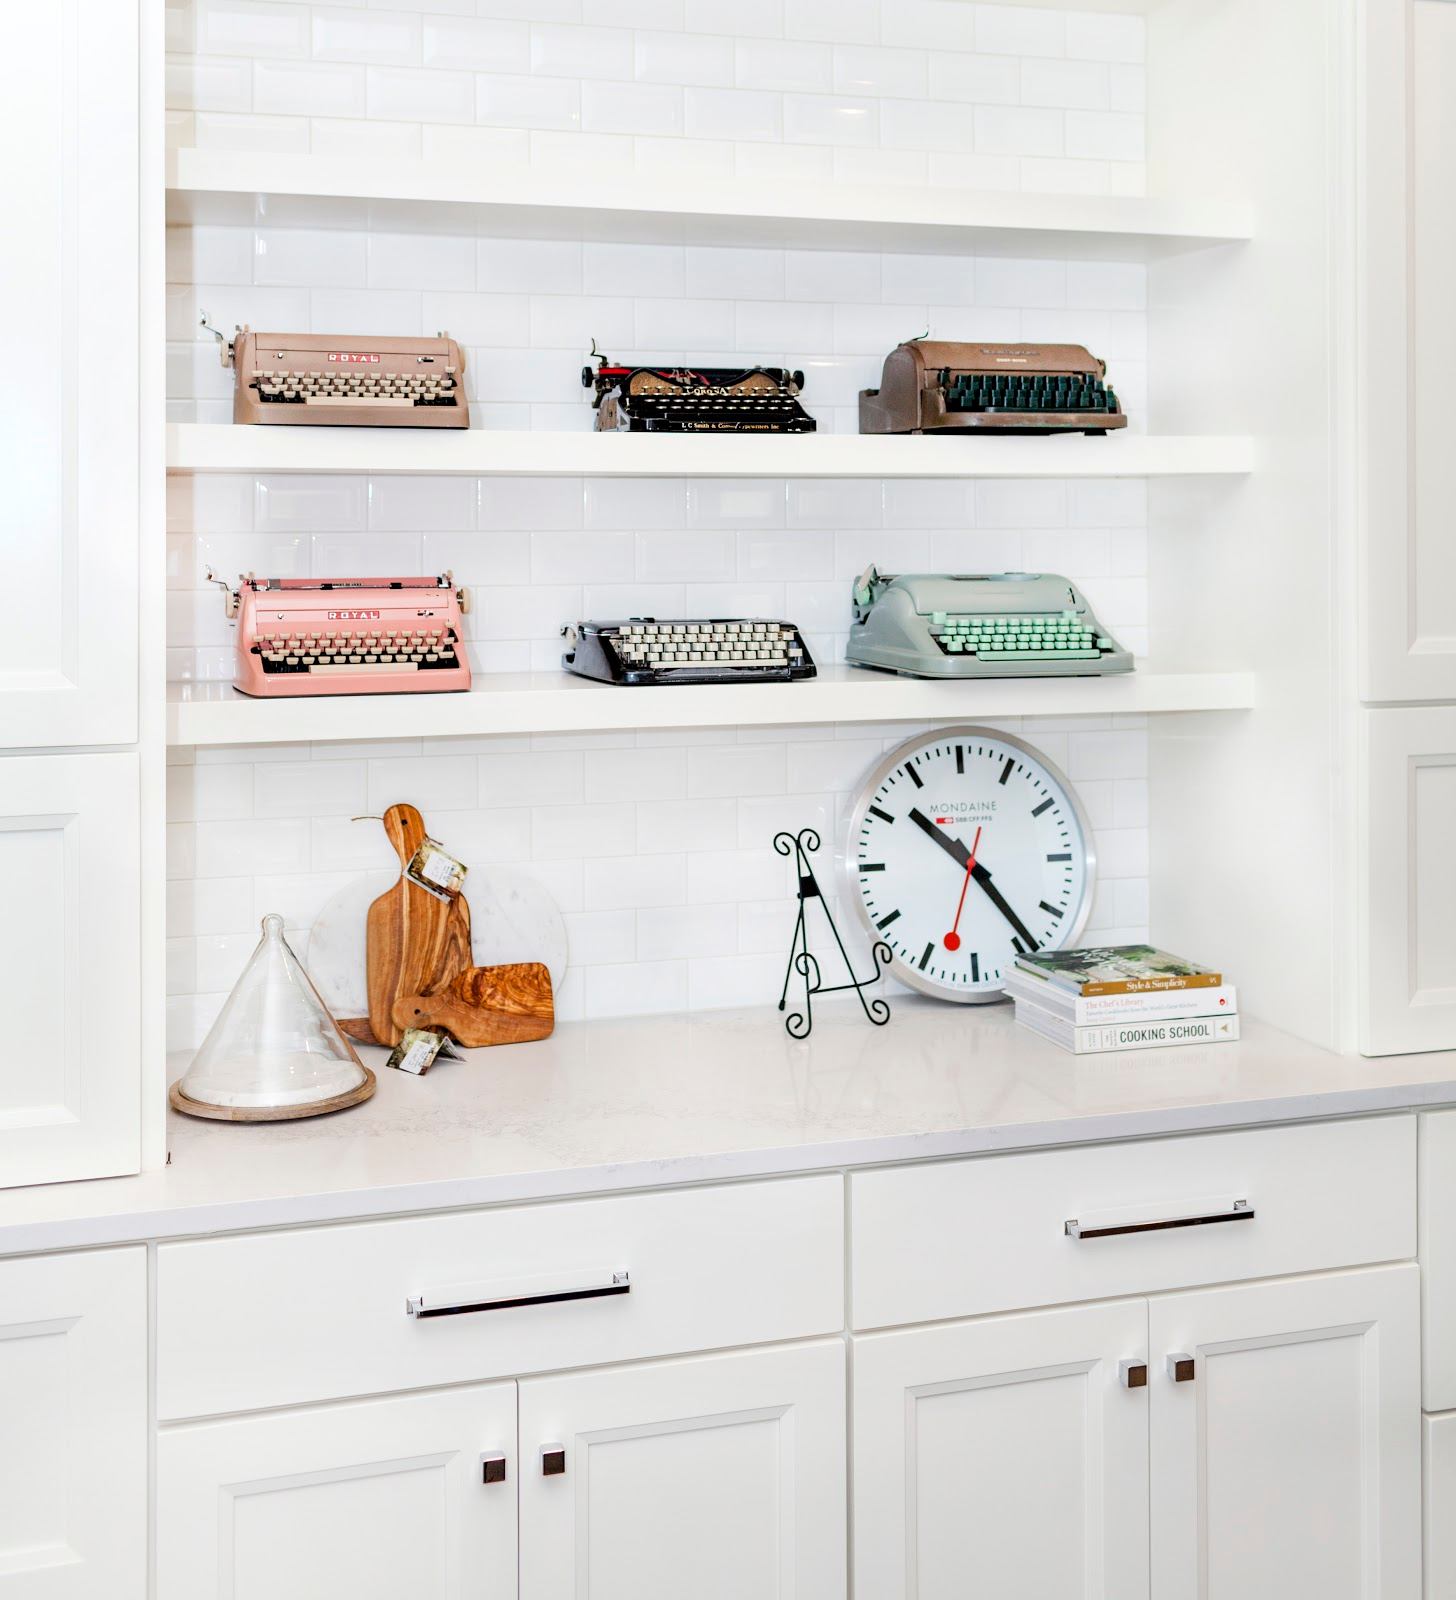 Vintage typewriter collection in modern kitchen - Laura U Interior Design